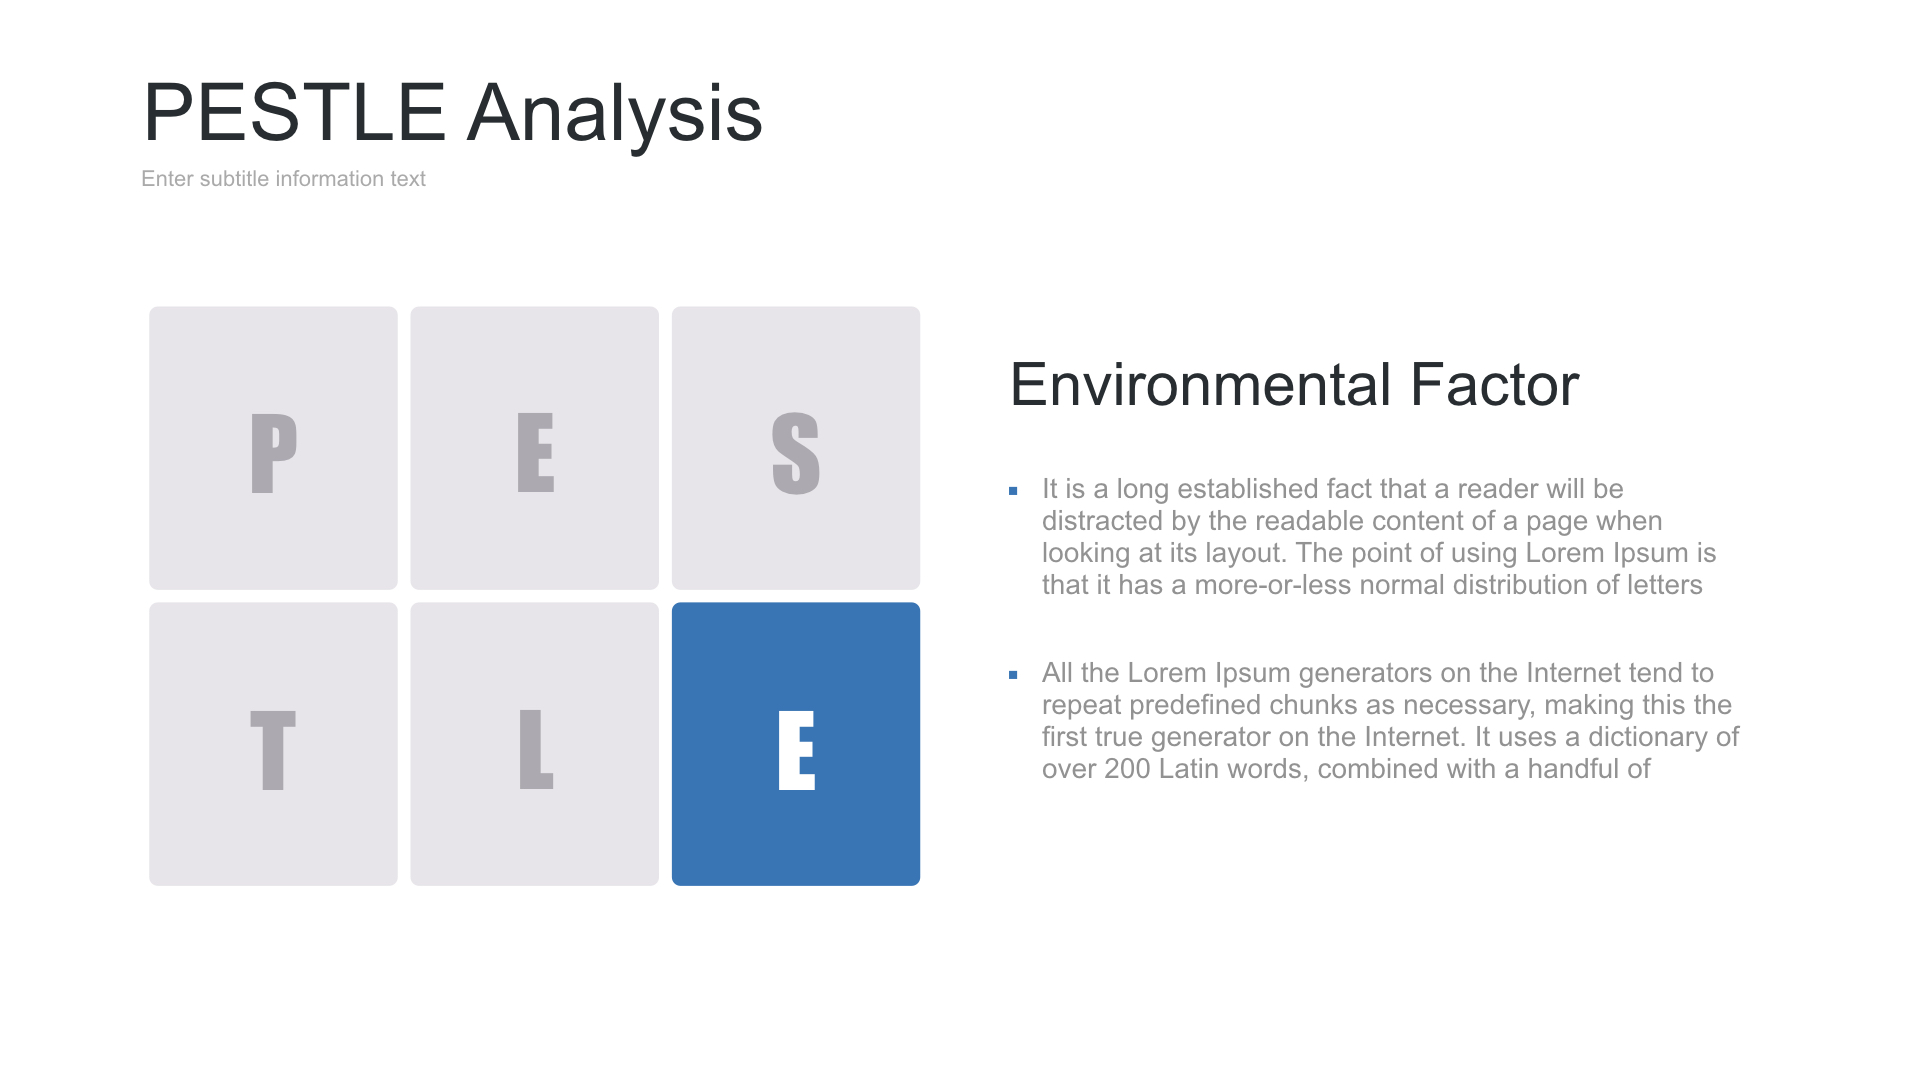 japan pestle analysis Lucintel, a leading global management consulting and market research firm, has analyzed the political, economic, social, technological, legal, and environmental factors of the japan and has come up with a comprehensive research report, pestle analysis of the japan 2016.